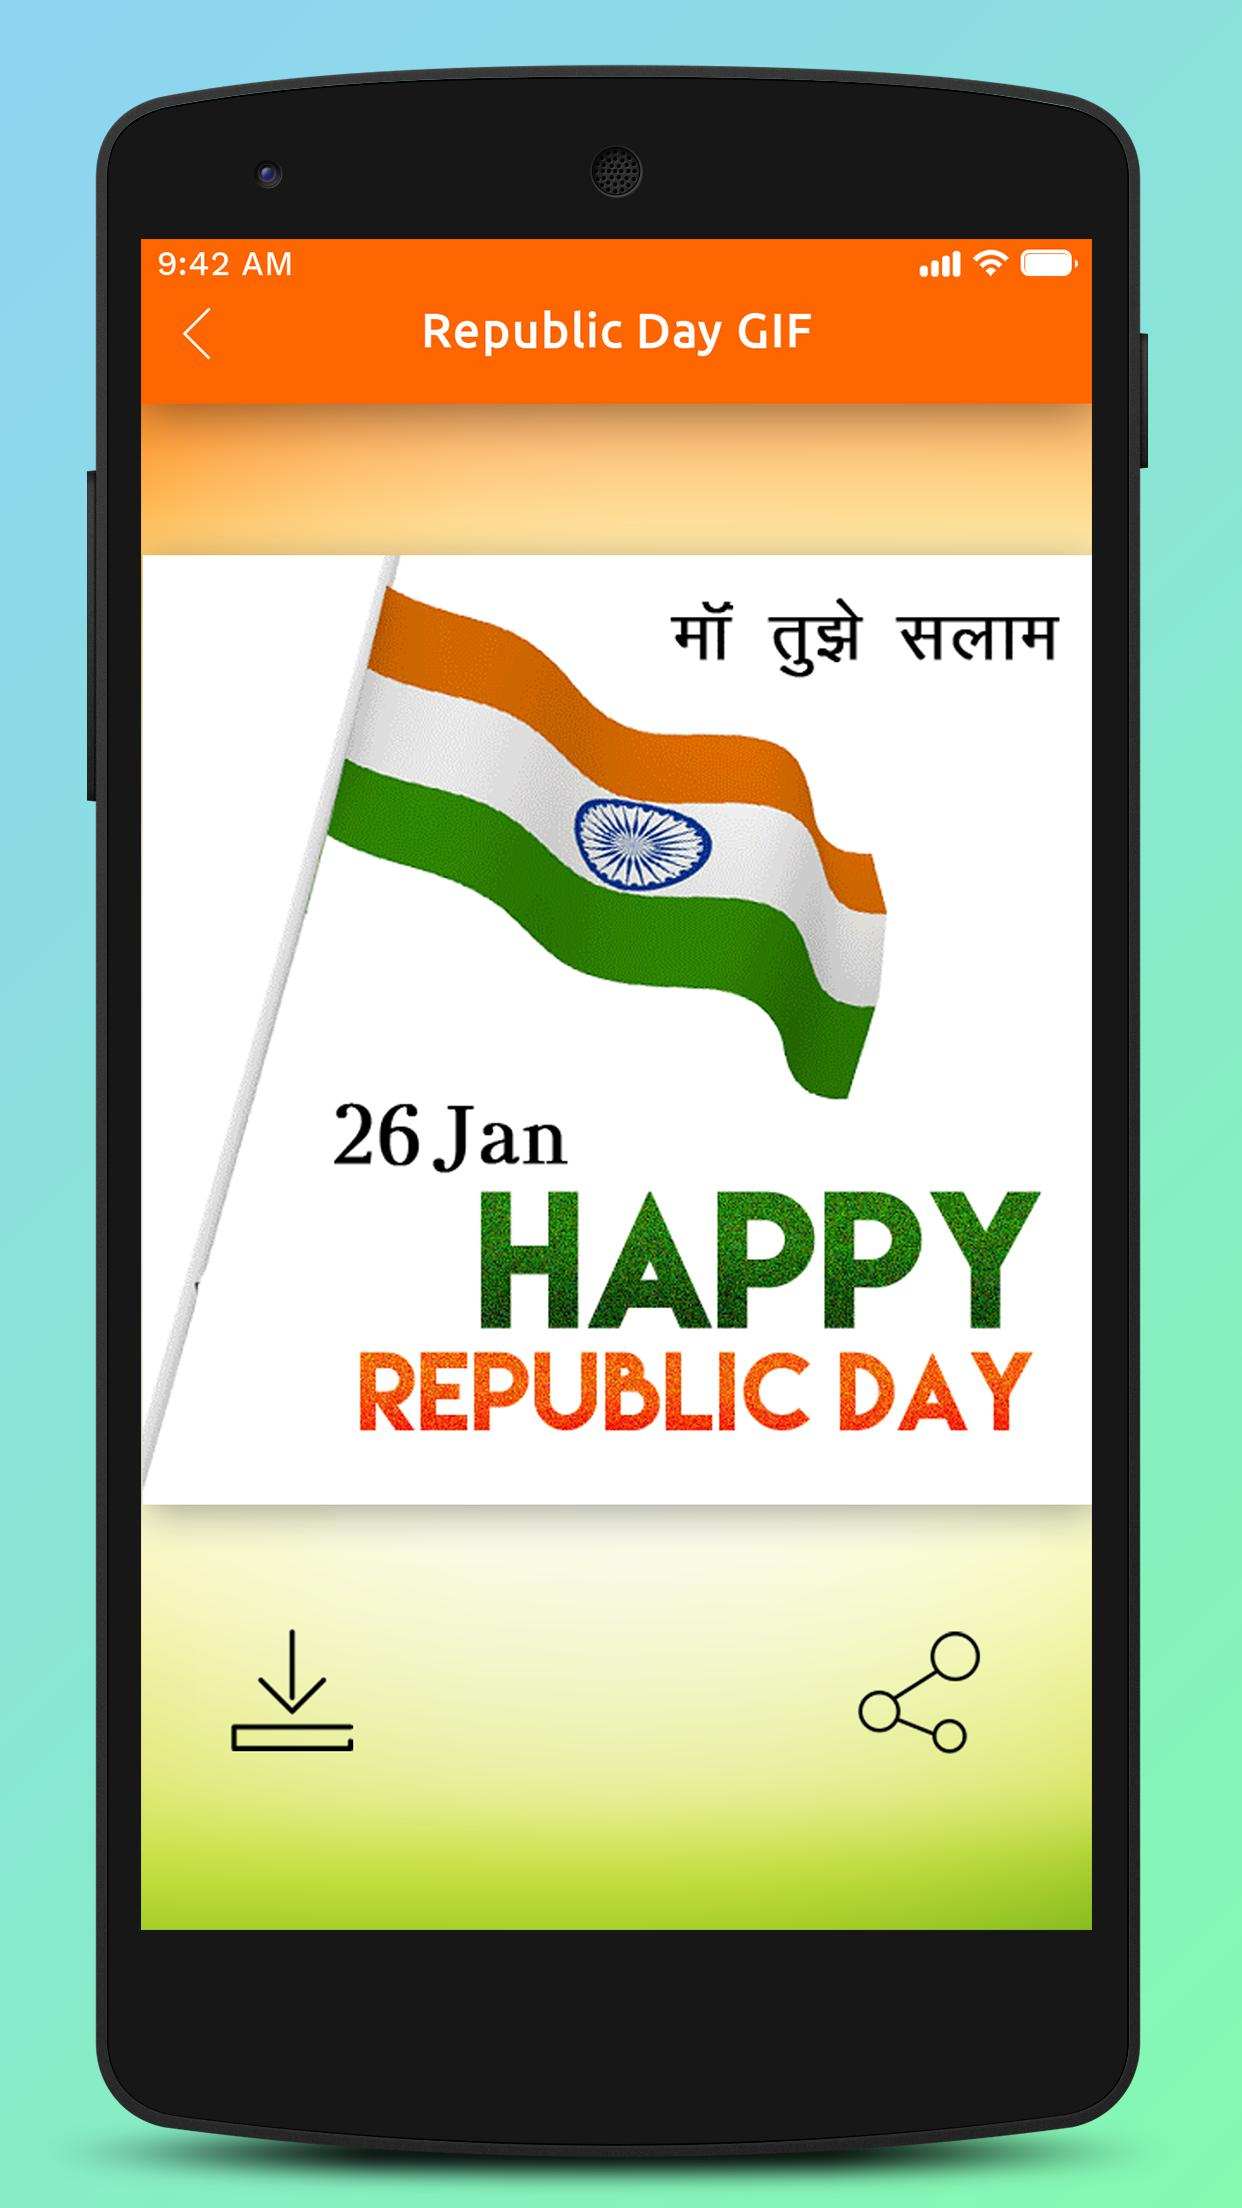 Republic Day GIF 2018 poster